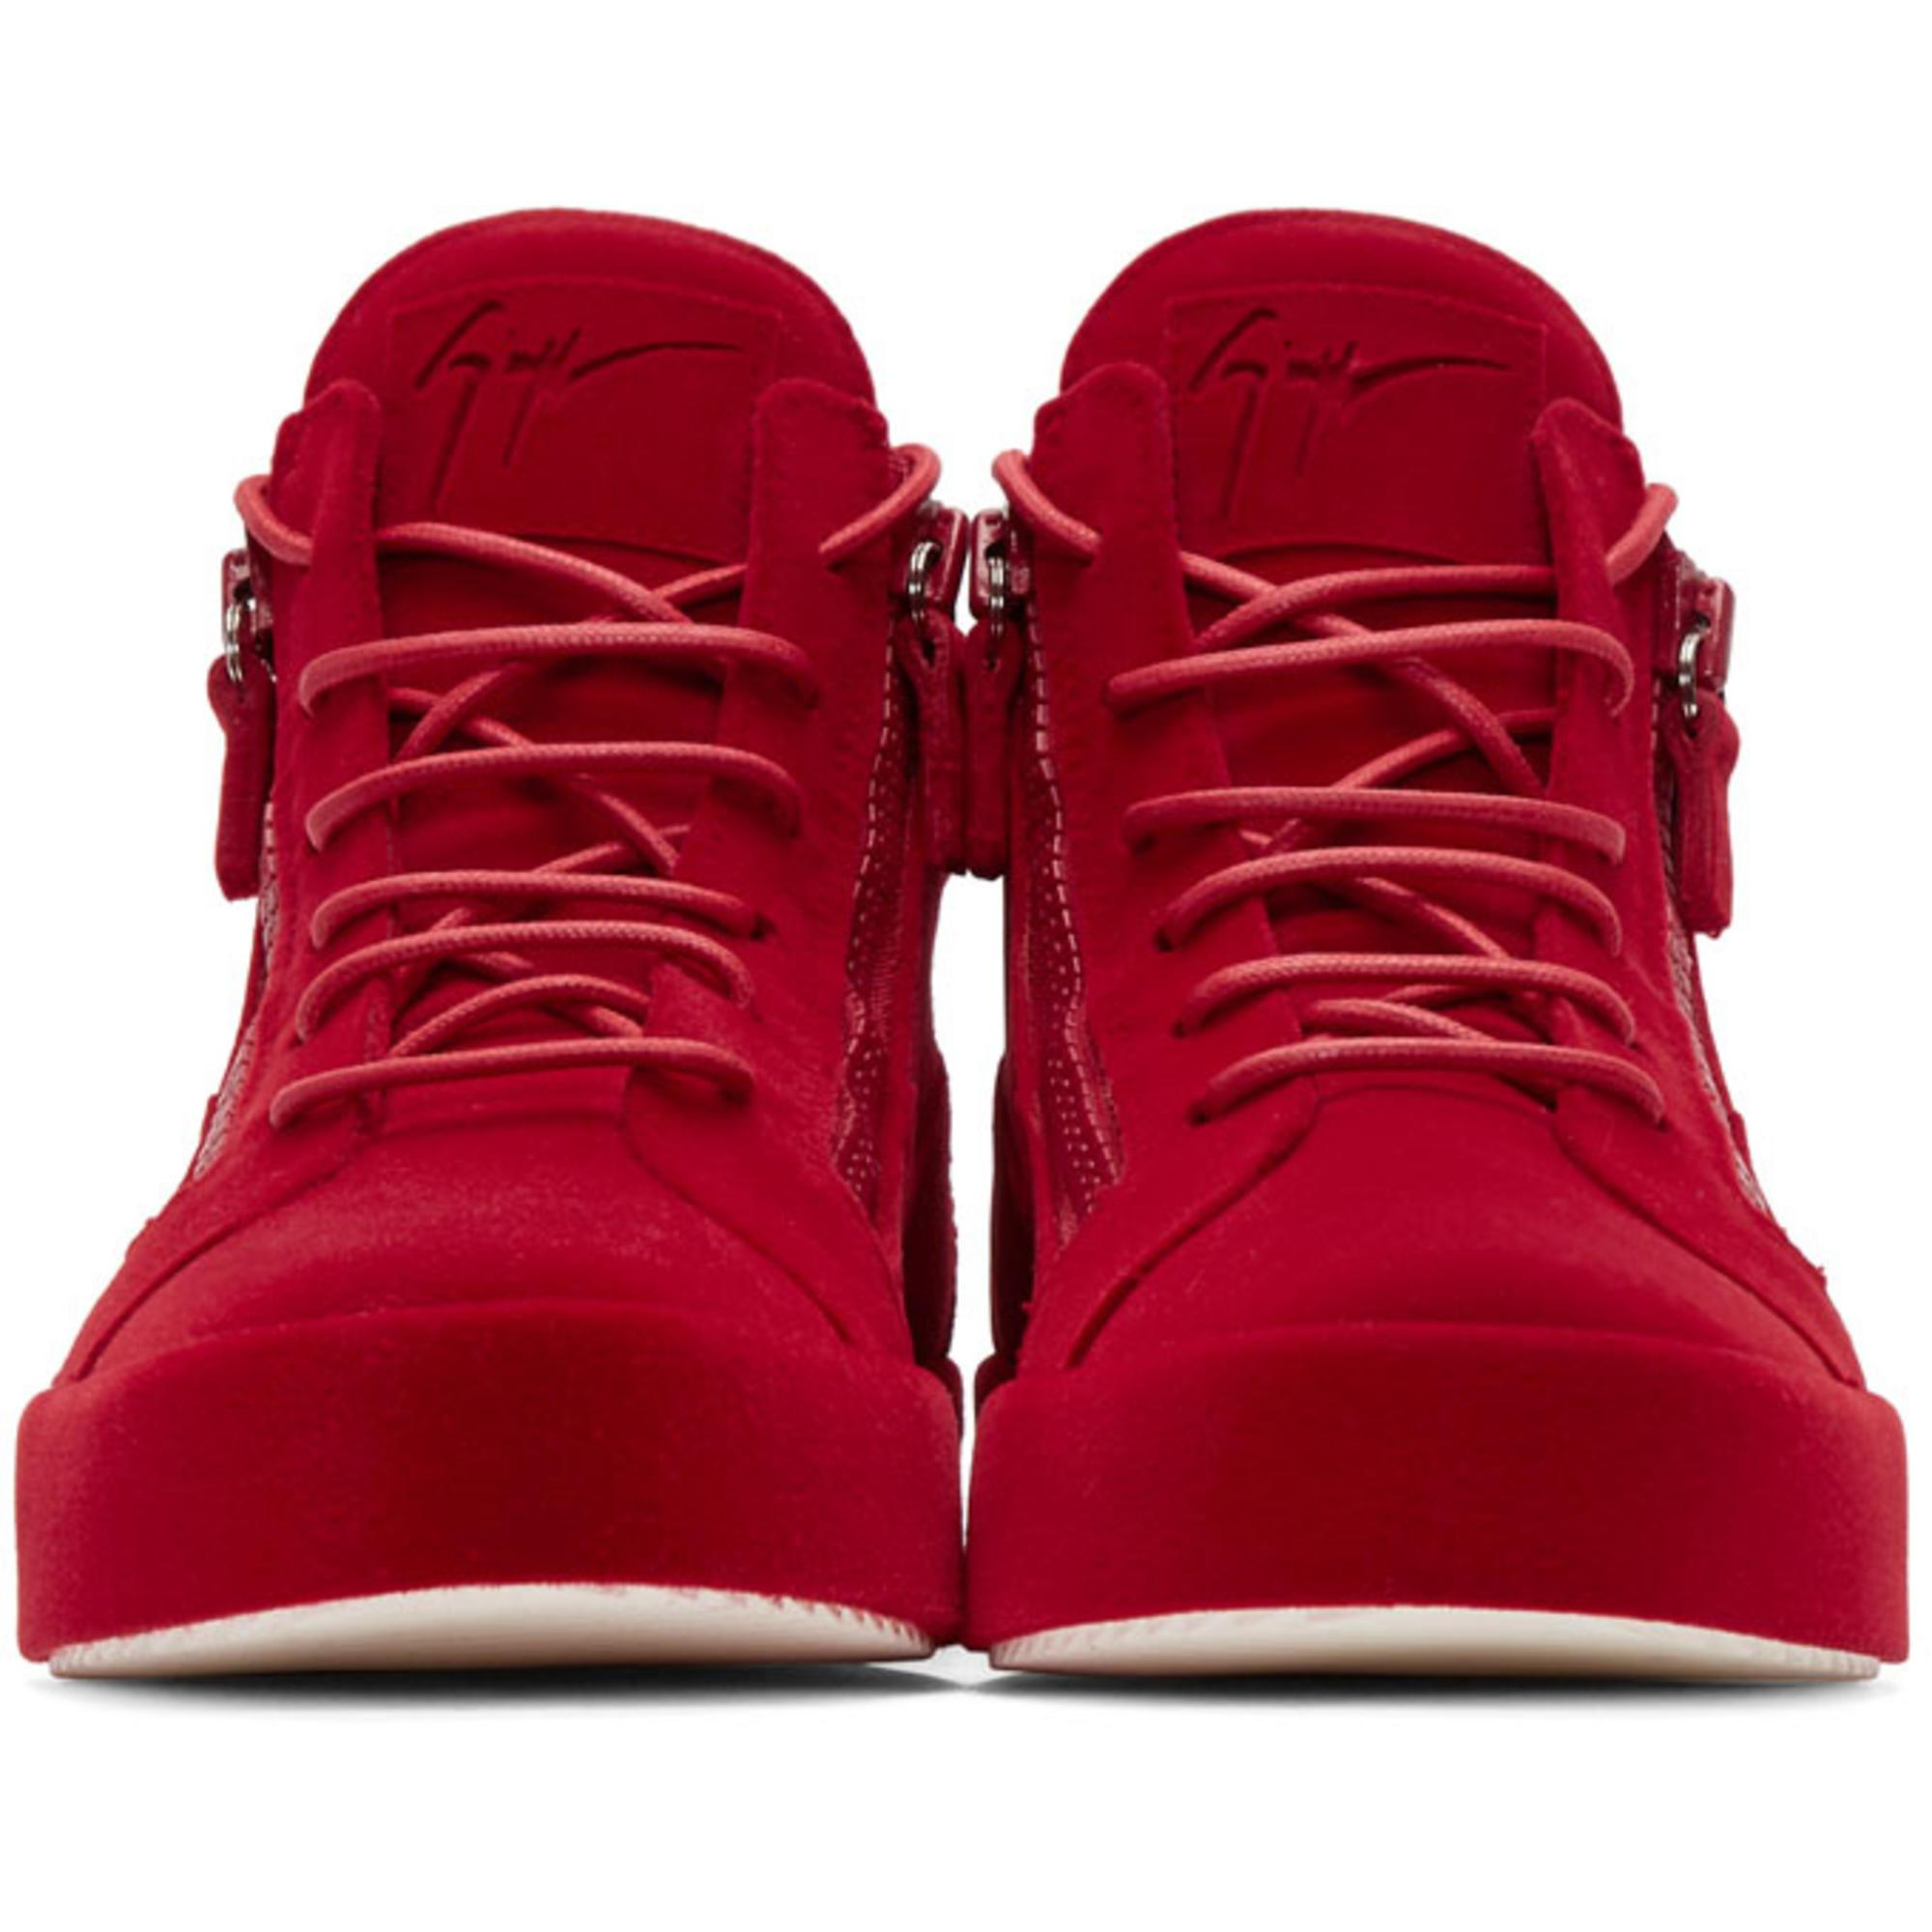 12cefb31979 Lyst - Giuseppe Zanotti Red Flocked May London High-top Sneakers in ...